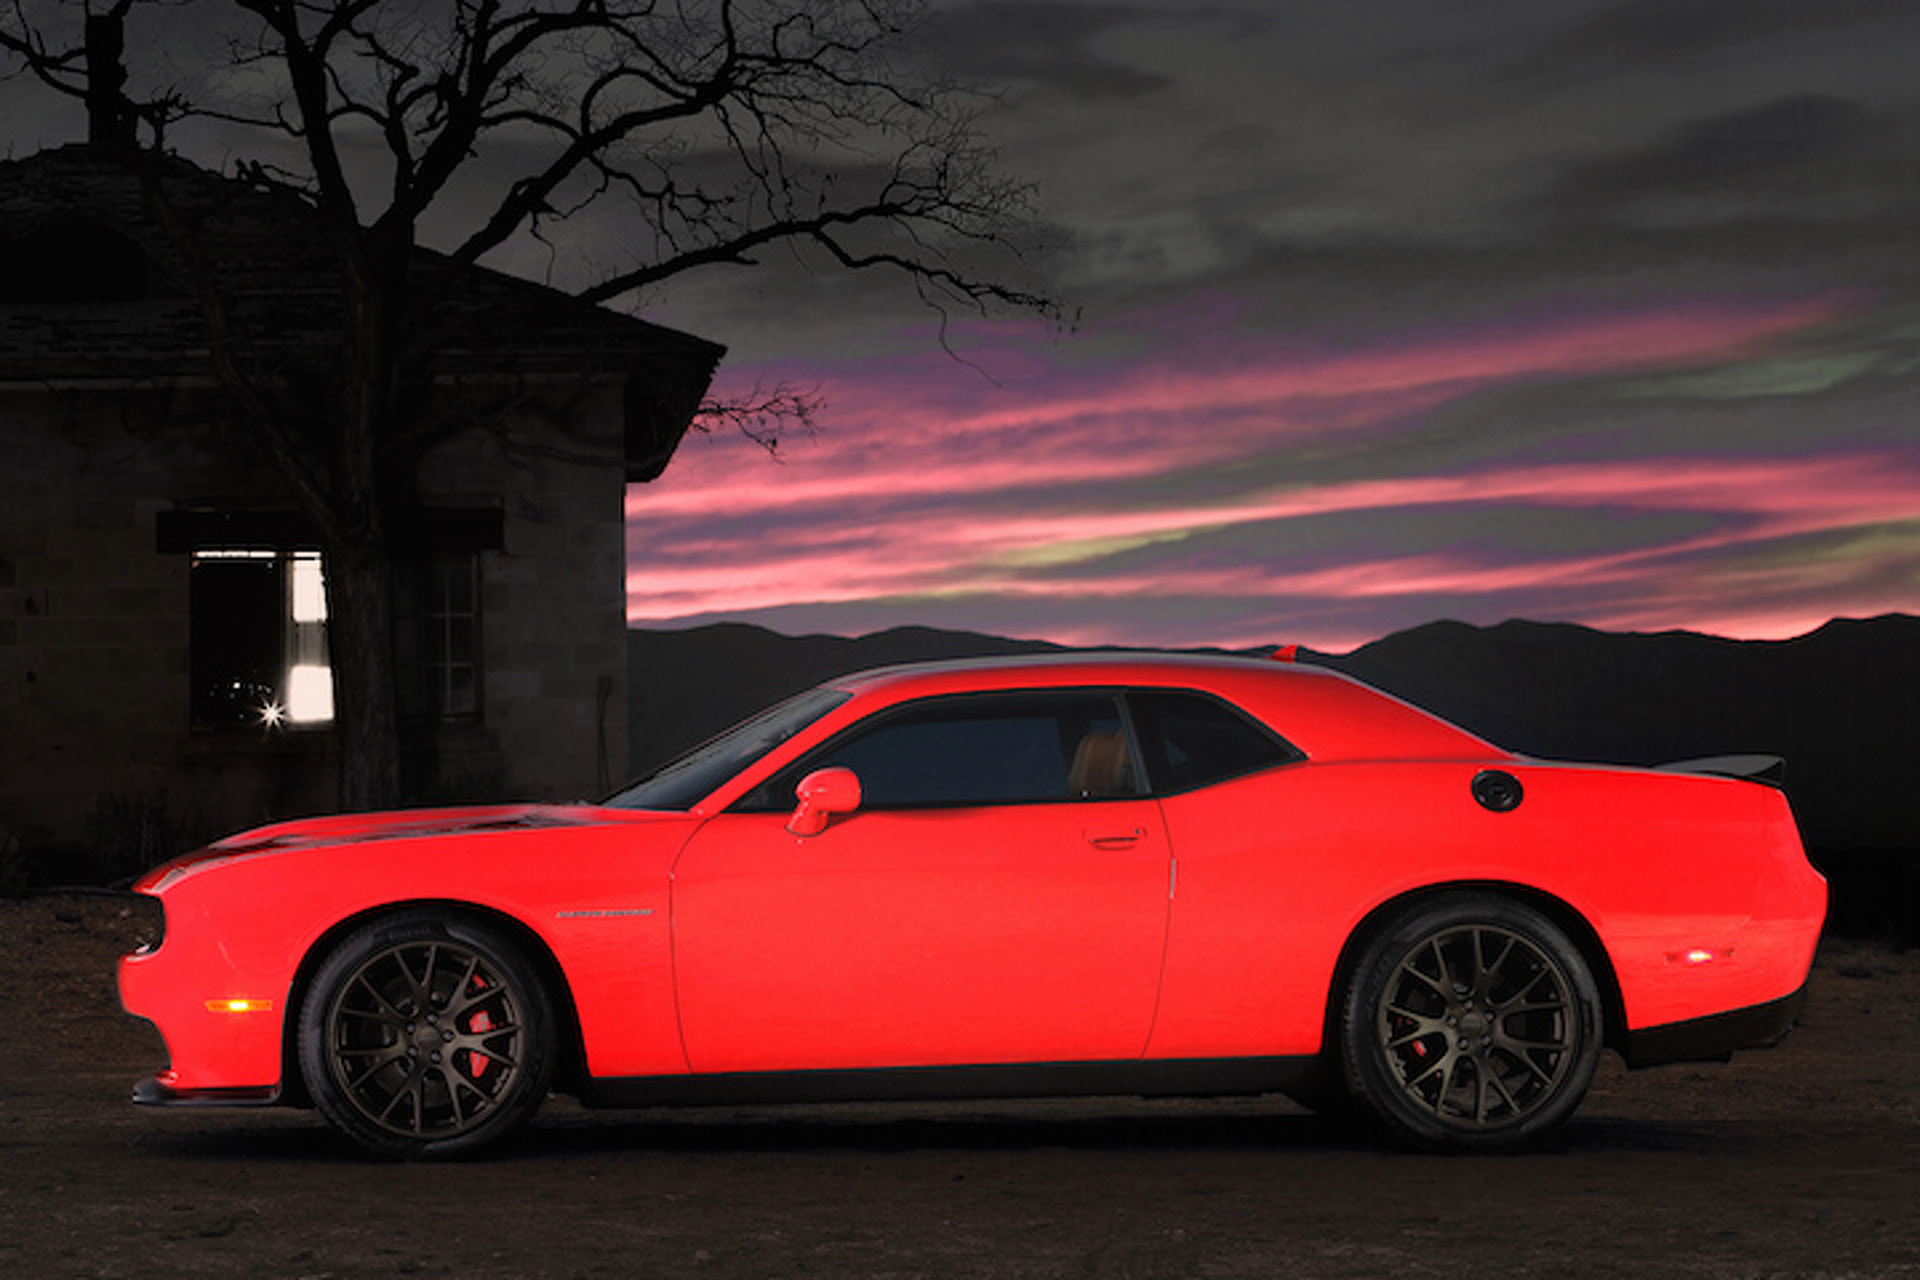 Srt Hellcat And Hemi Engines Might Not Survive Through 2019